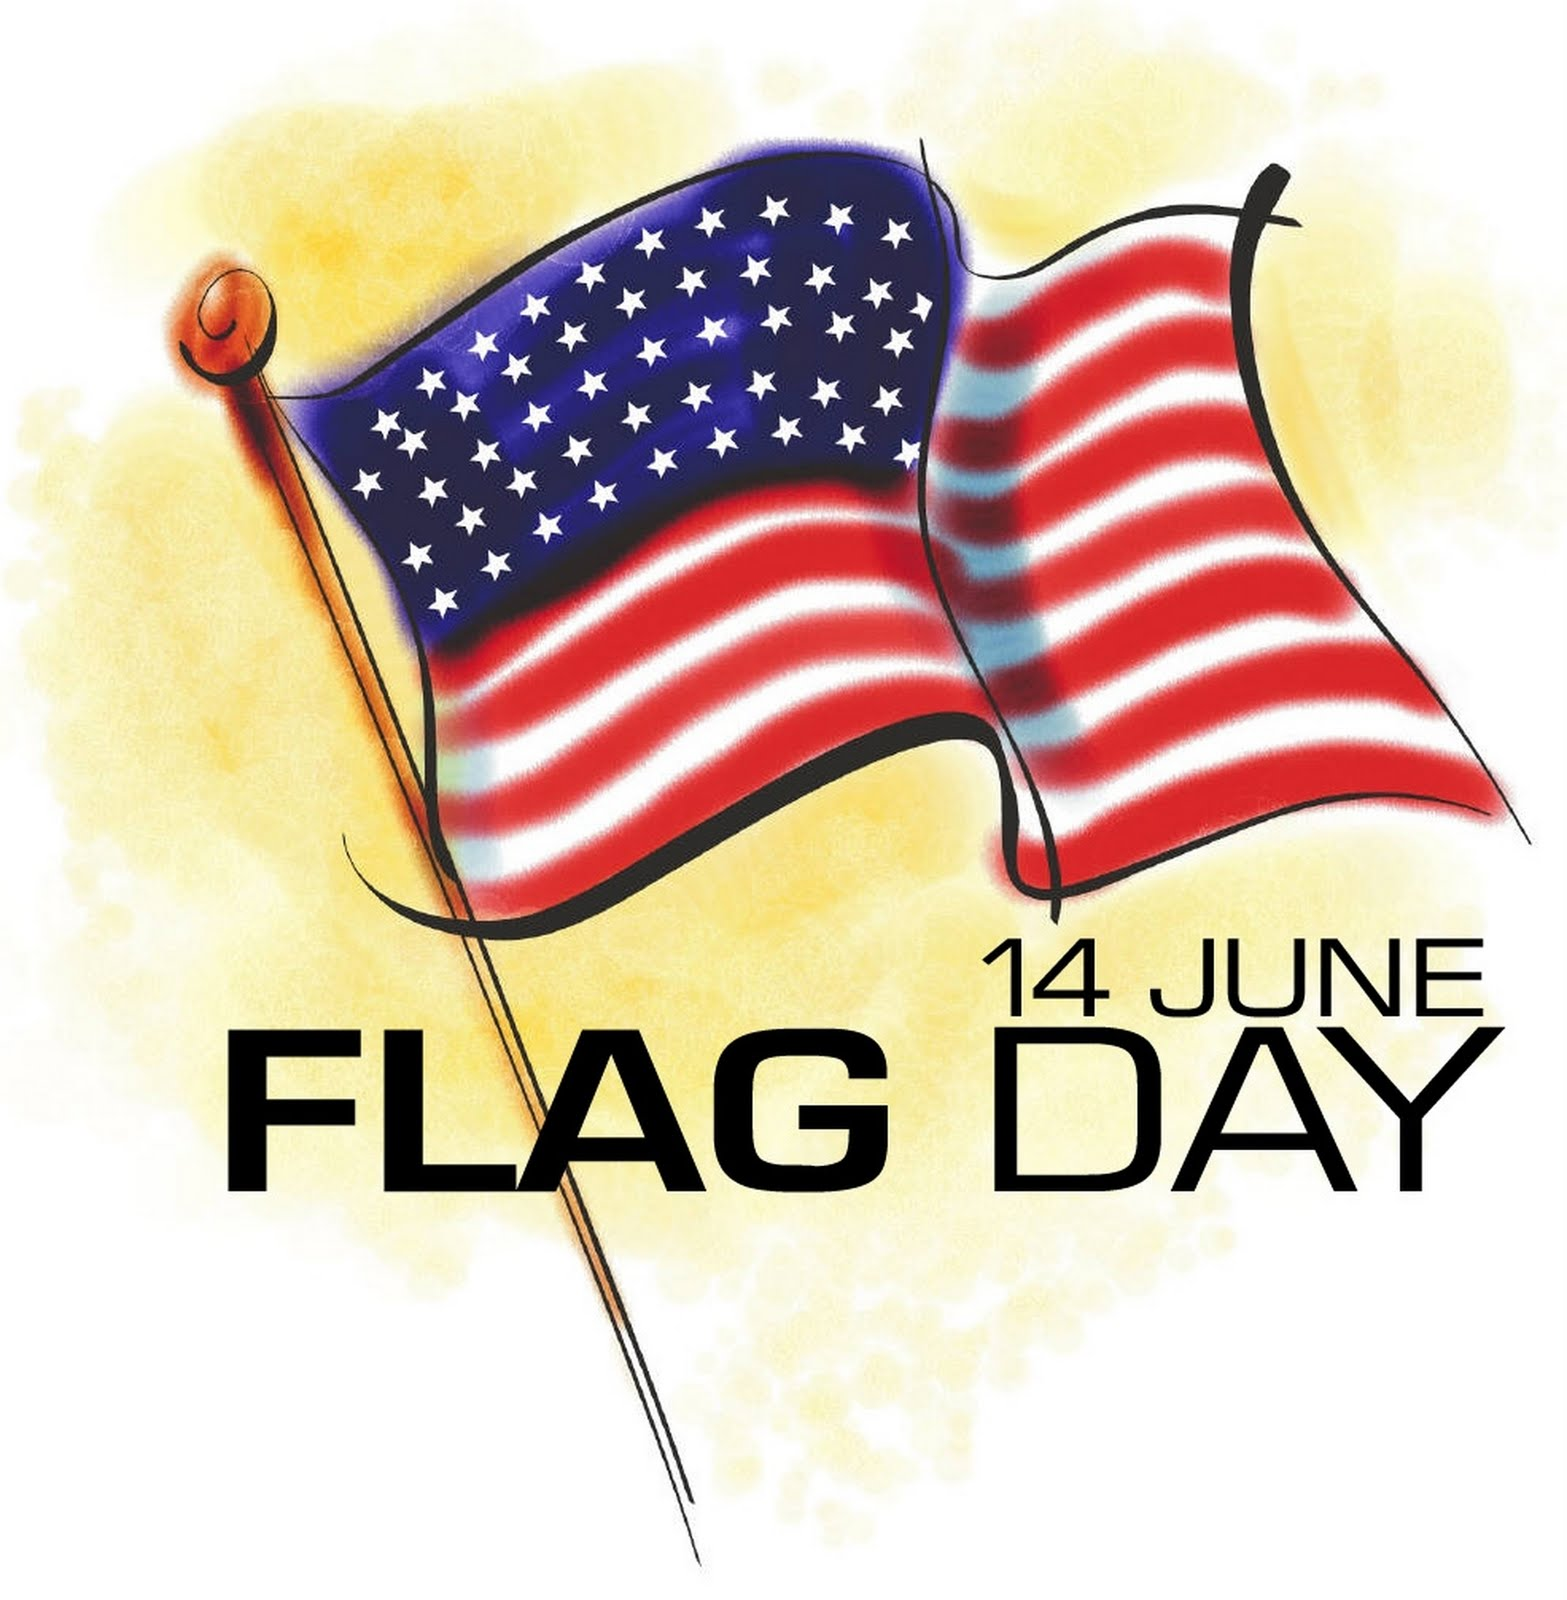 The History Of Flag Day A1 Exterminators